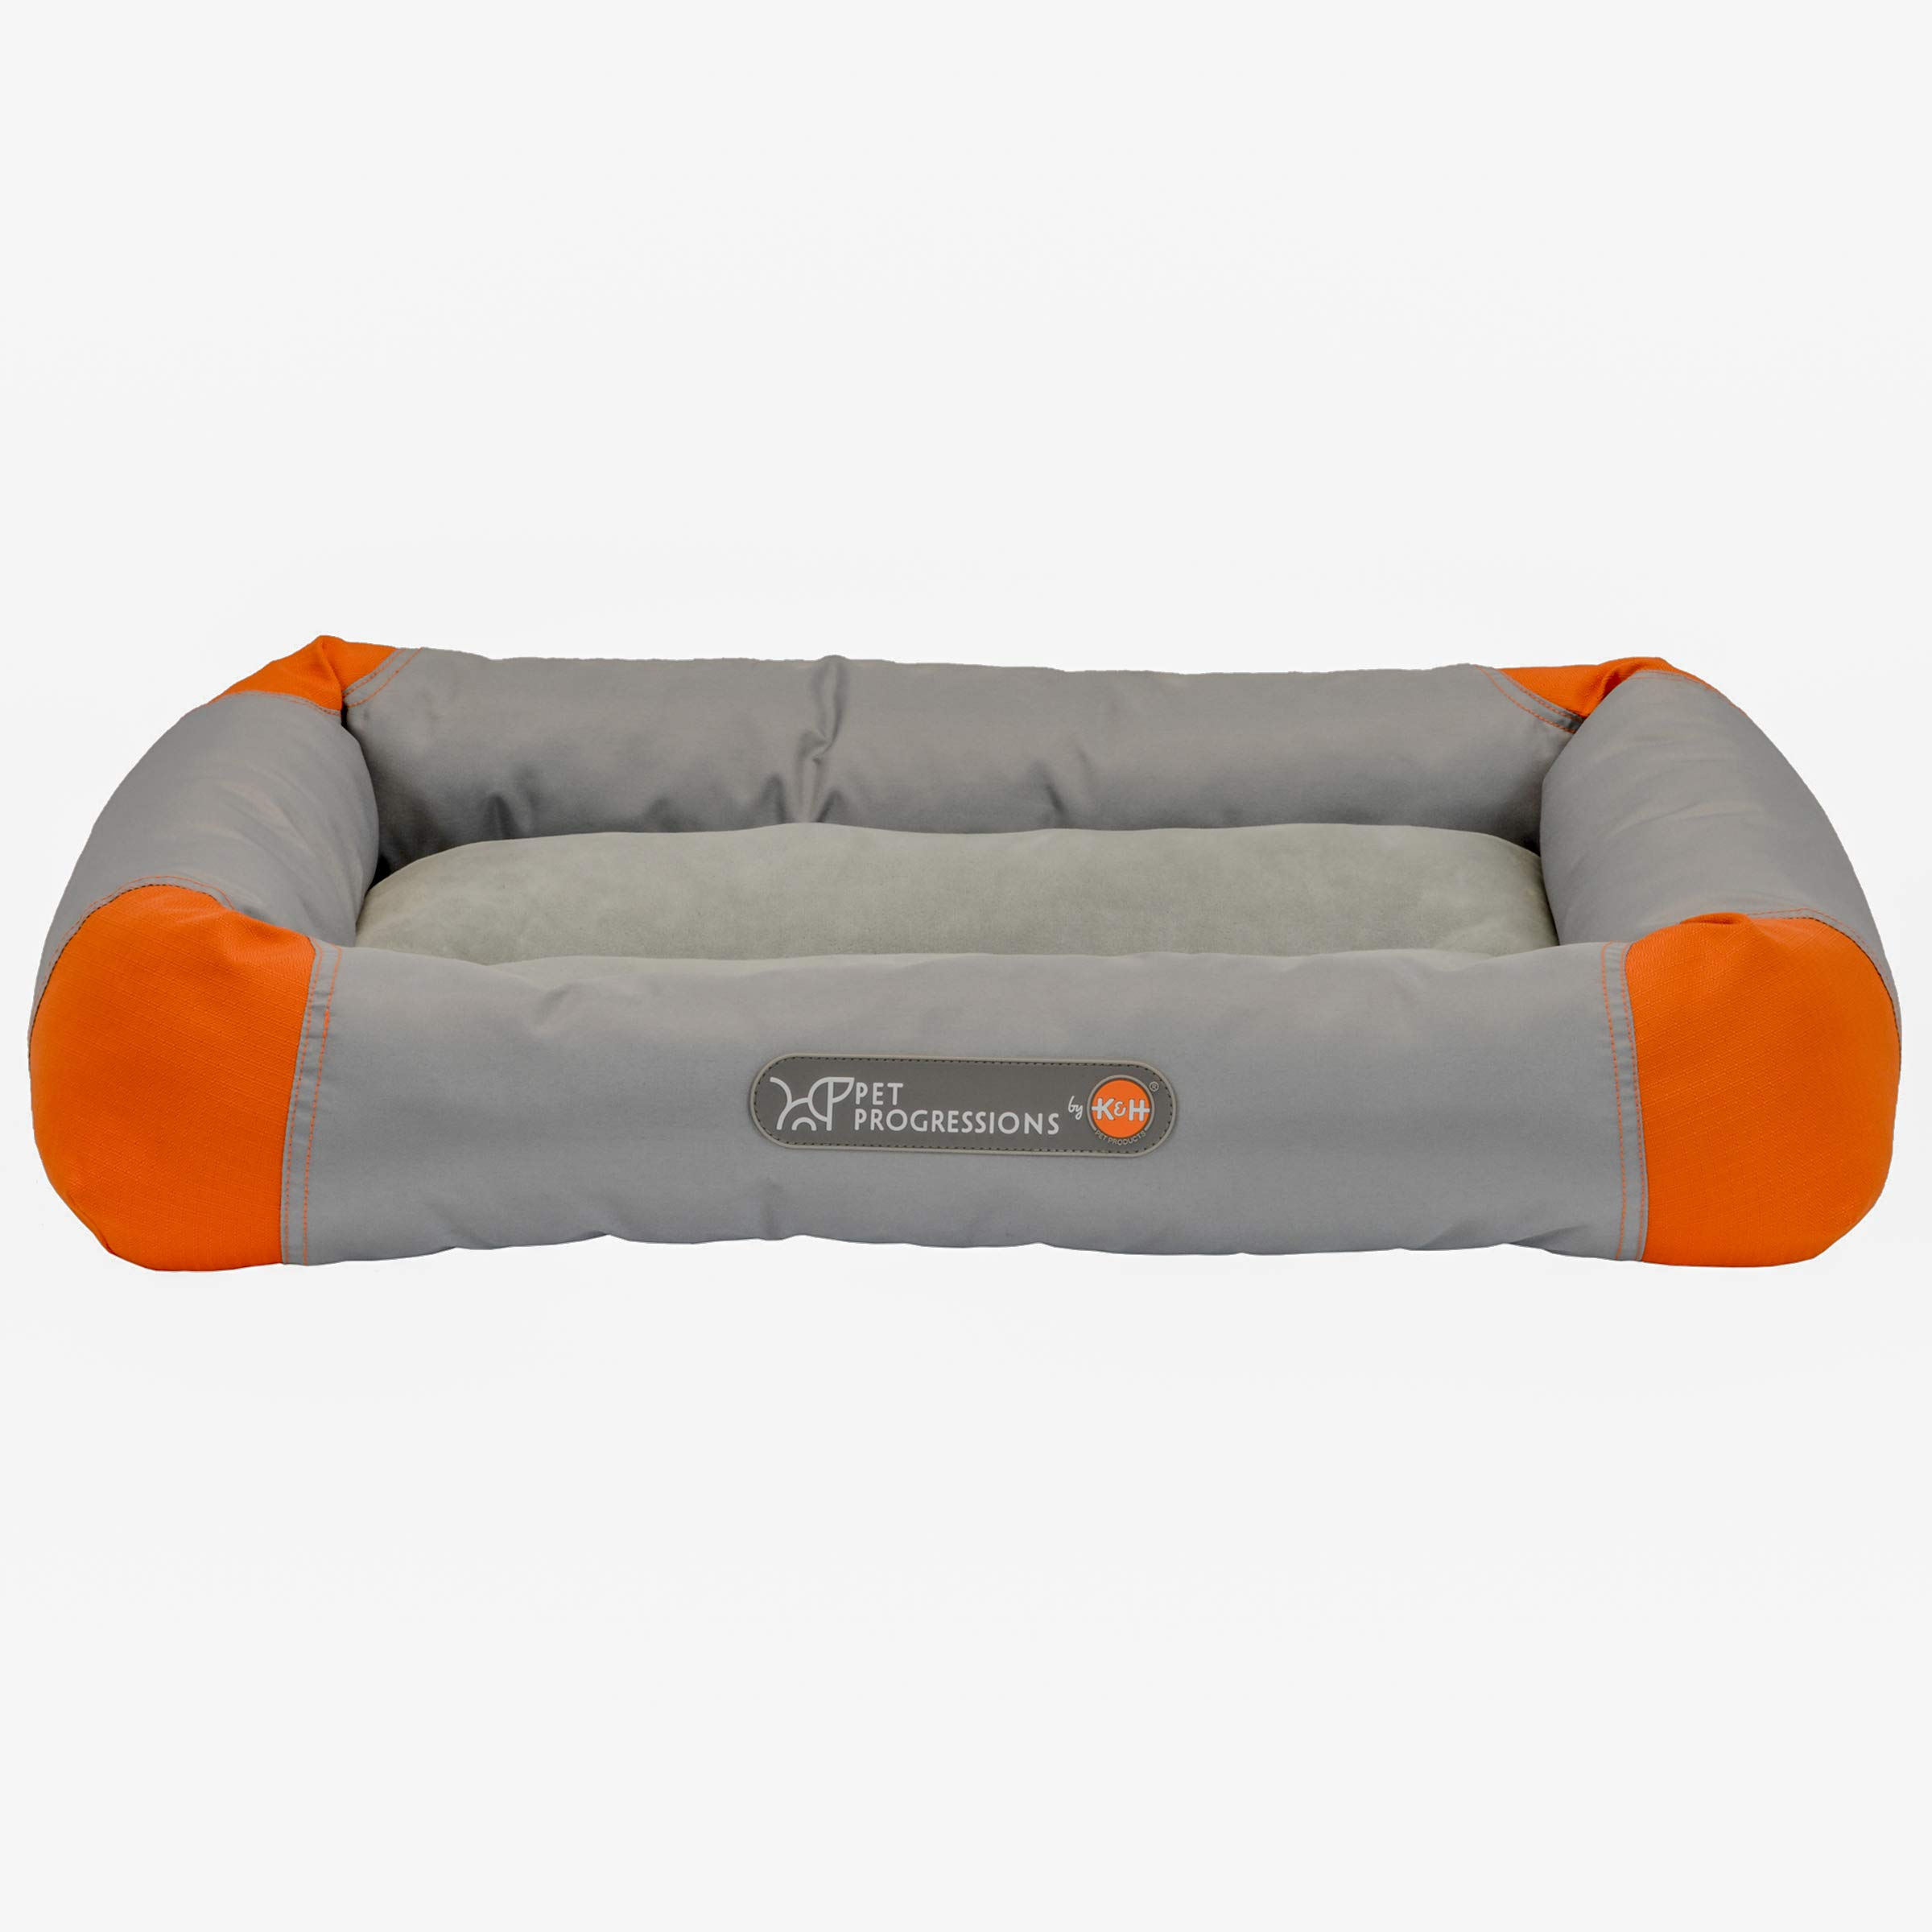 Pet Progressions by K&H Waterproof Puppy Bolster Pet Pad Small Grey - Piddle Proof, Stain & Odor Resistant, and Tear Resistant for Puppies & Adult Dogs by Pet Progressions (Image #1)